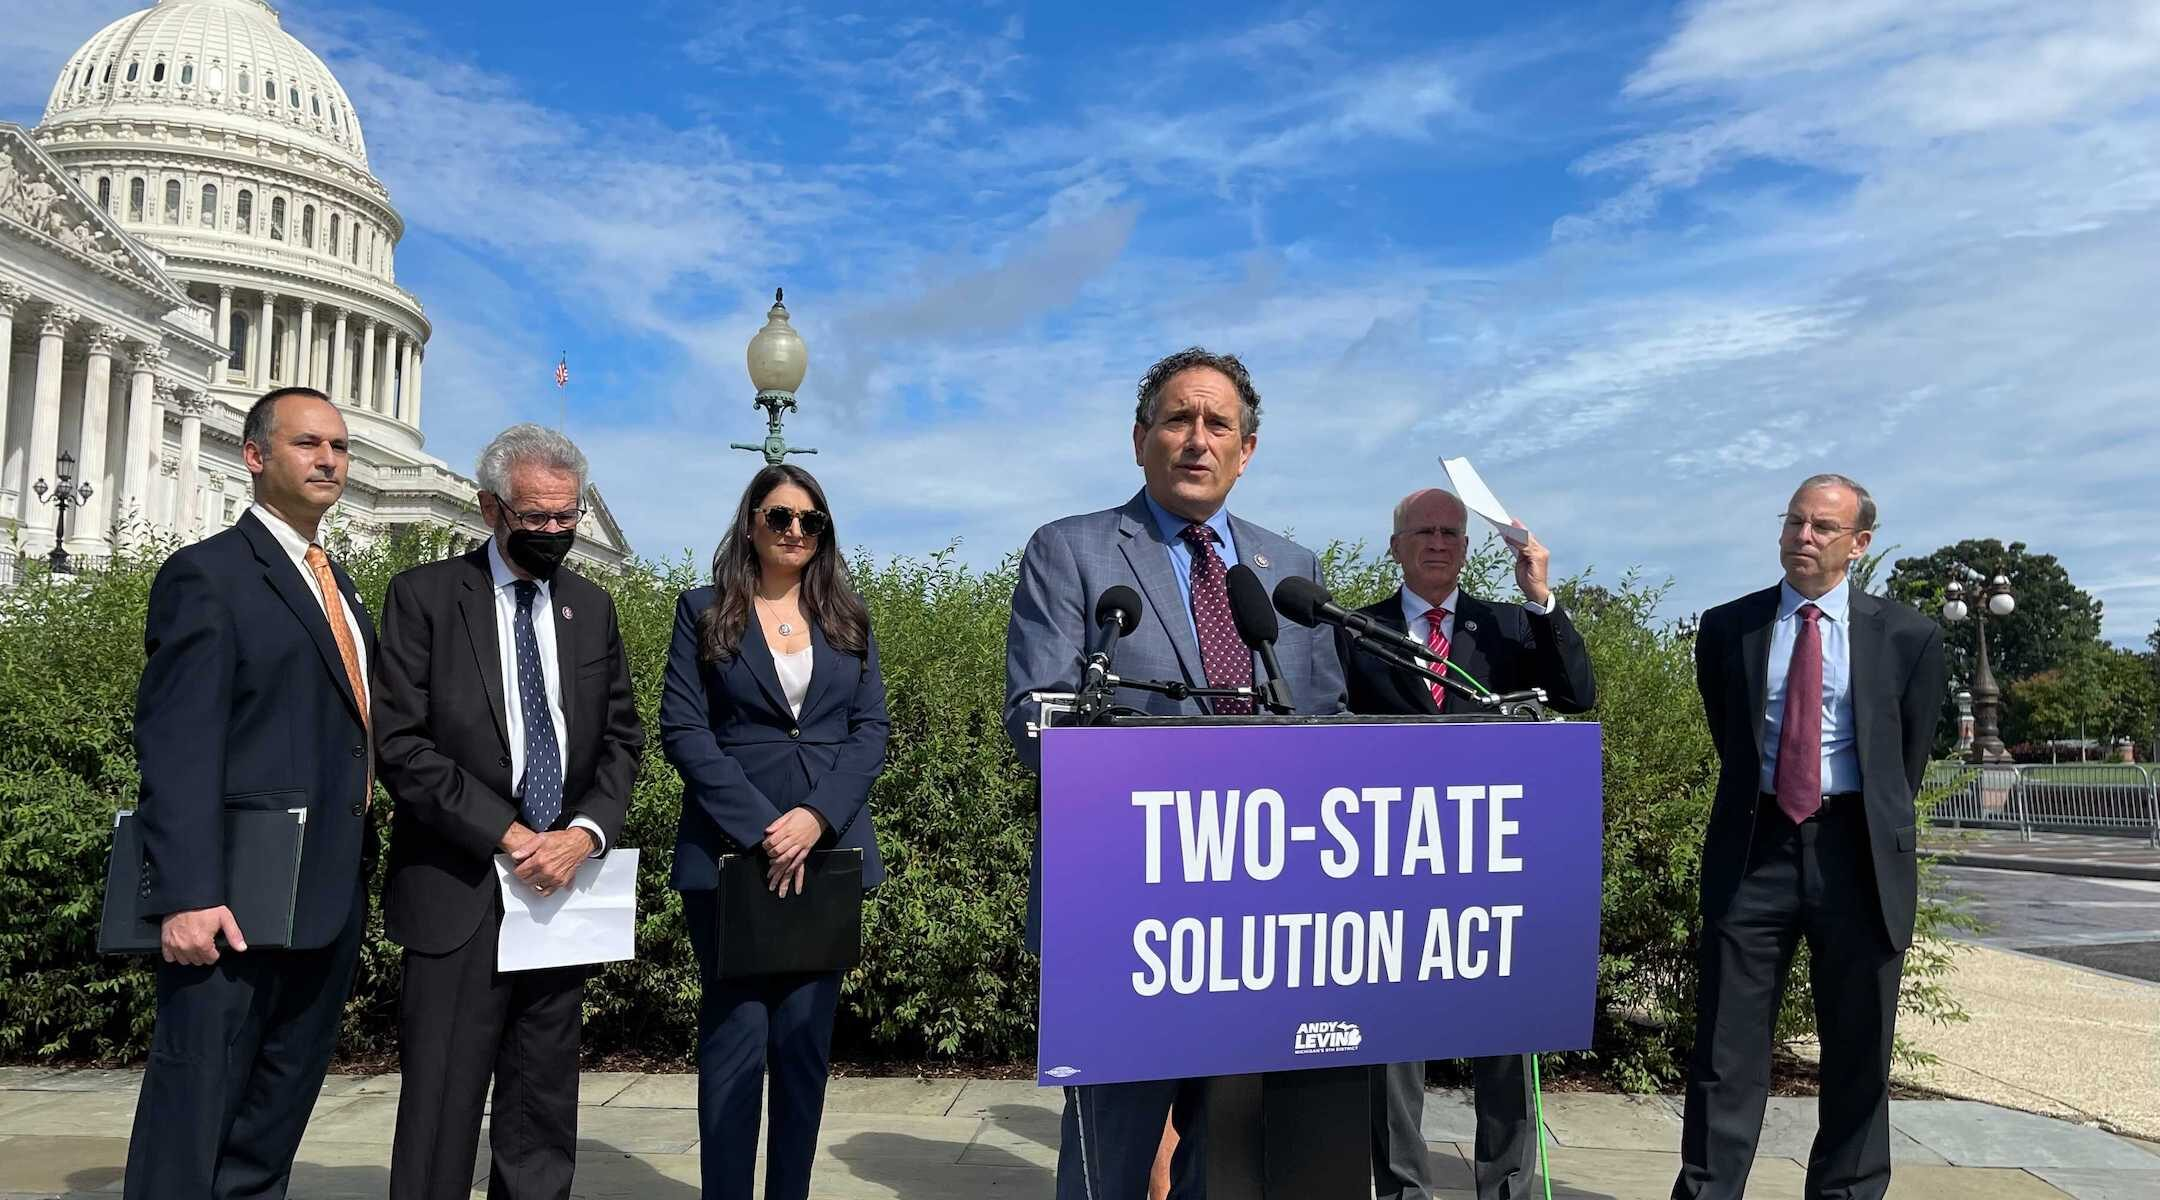 Progressive Dems introduce bill they say aims at keeping 2-state solution alive | The Times of Israel